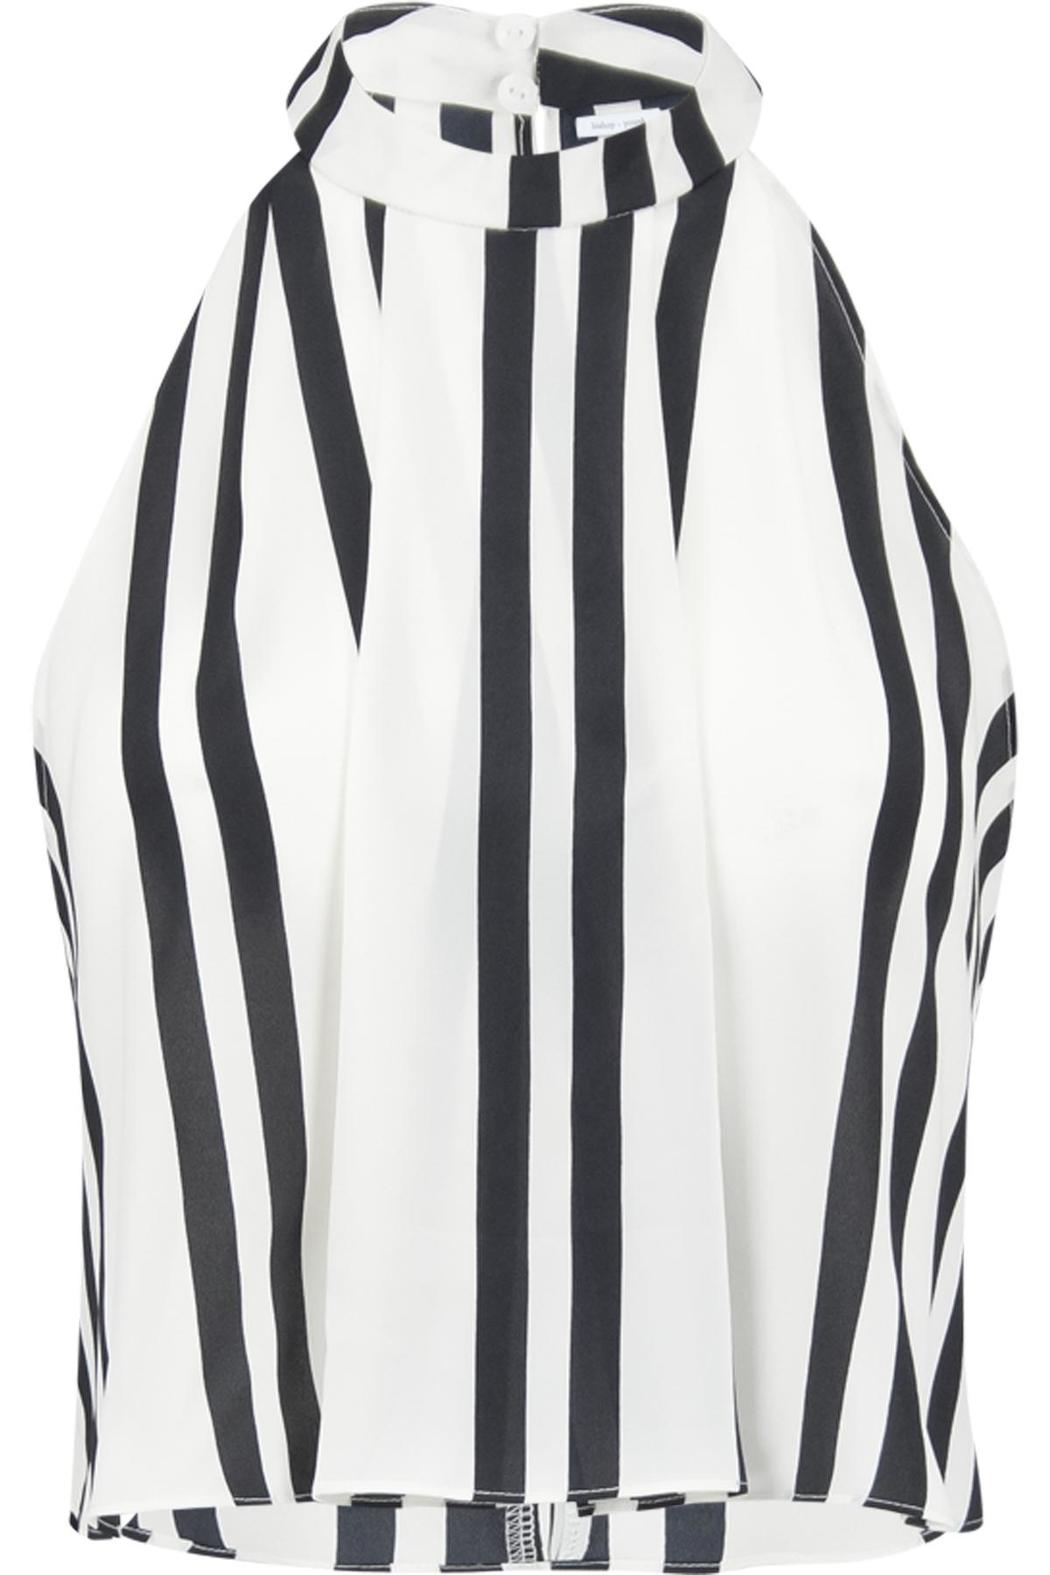 Bishop + Young Striped Sleeveless Blouse - Main Image